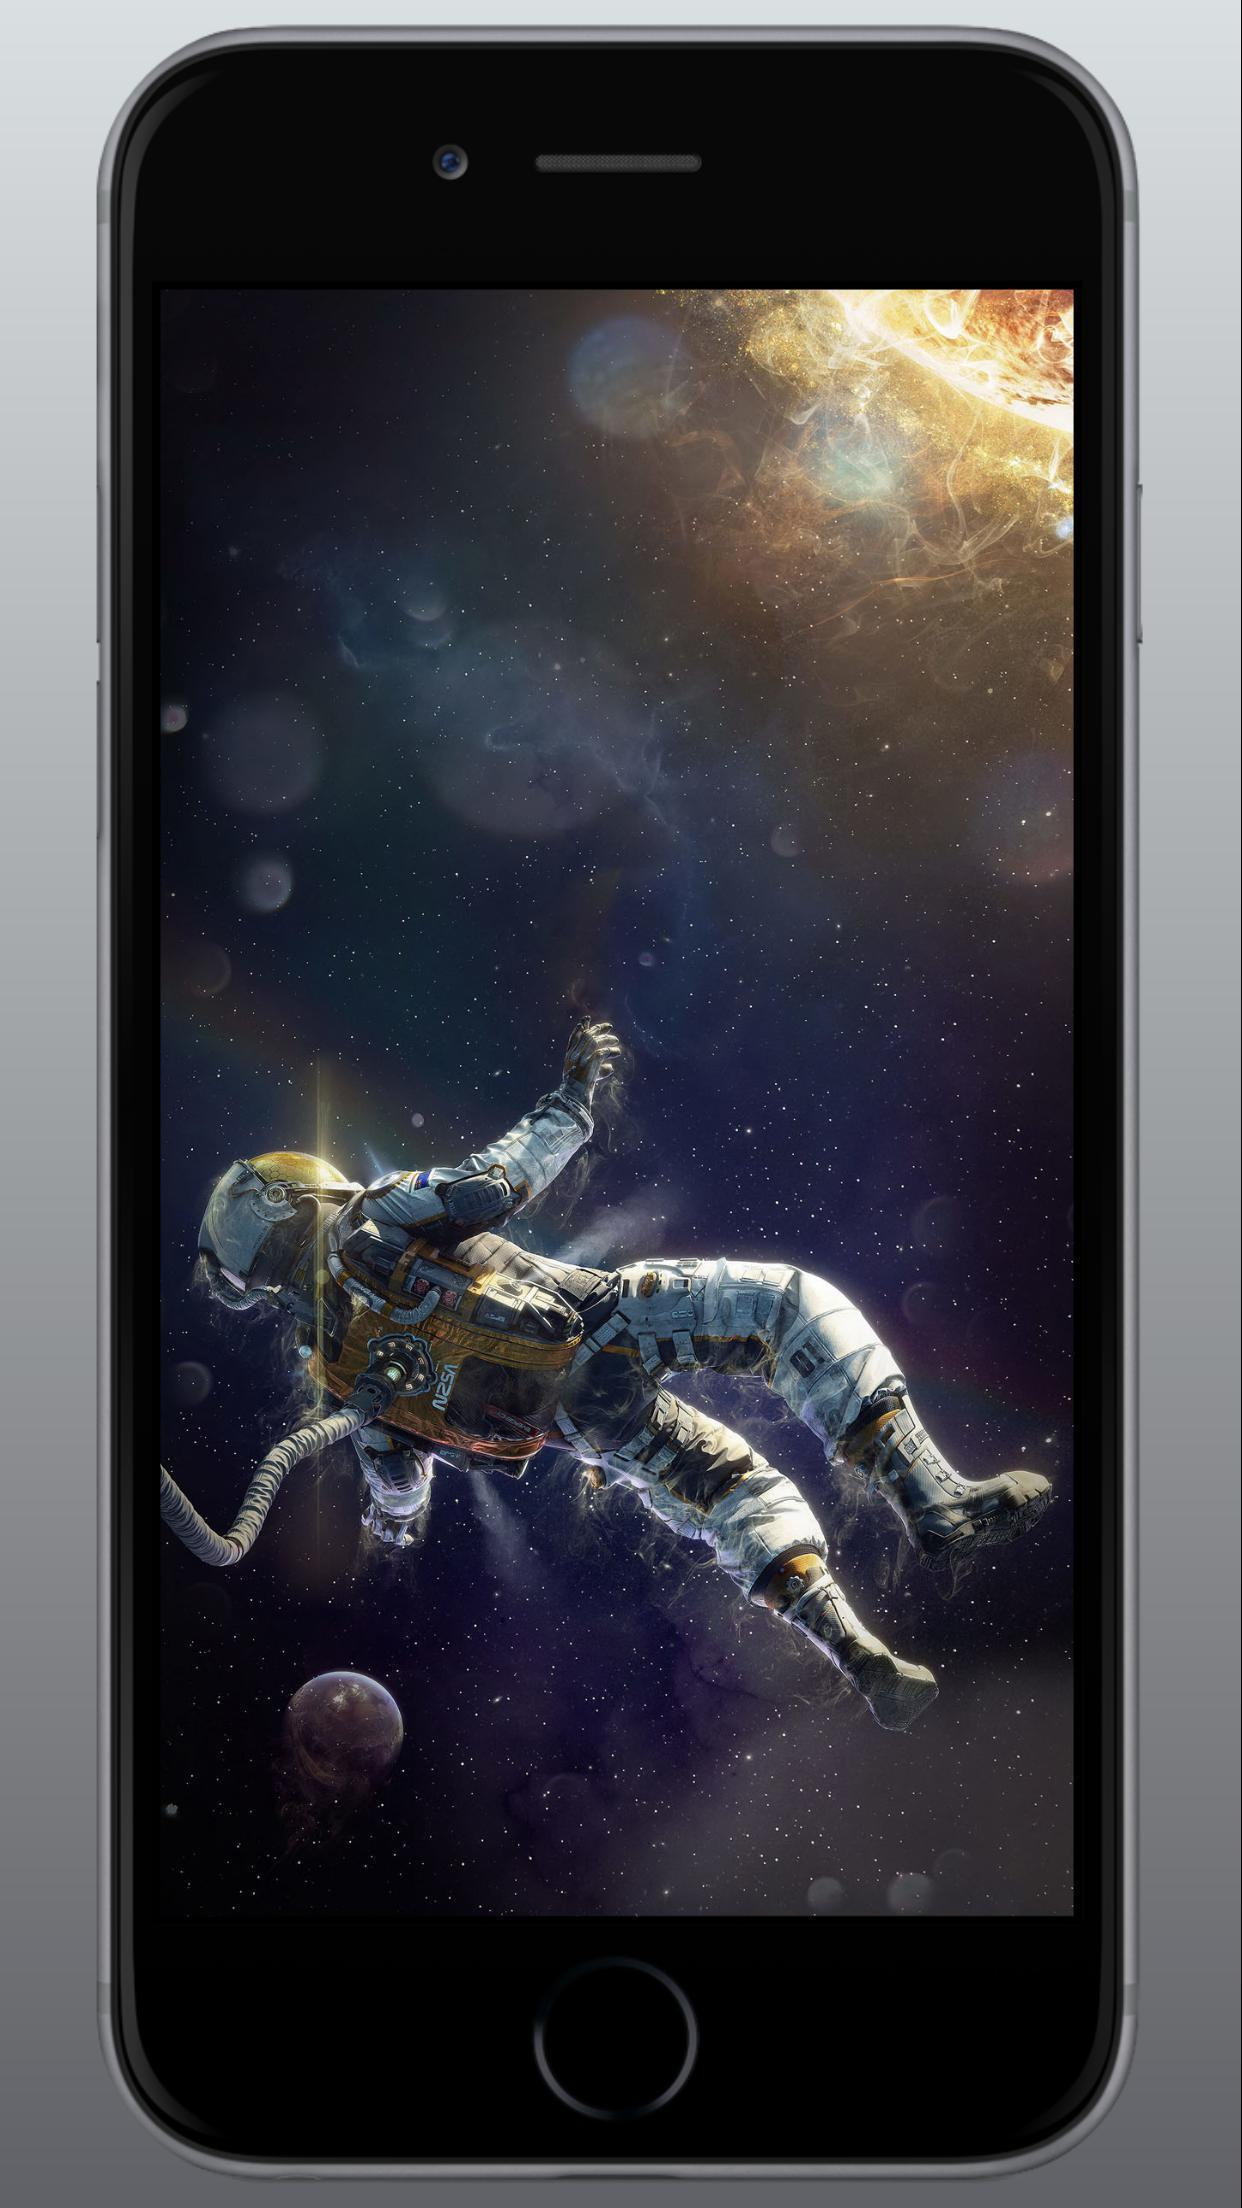 Astronaut Wallpaper 3d 4k For Android Apk Download